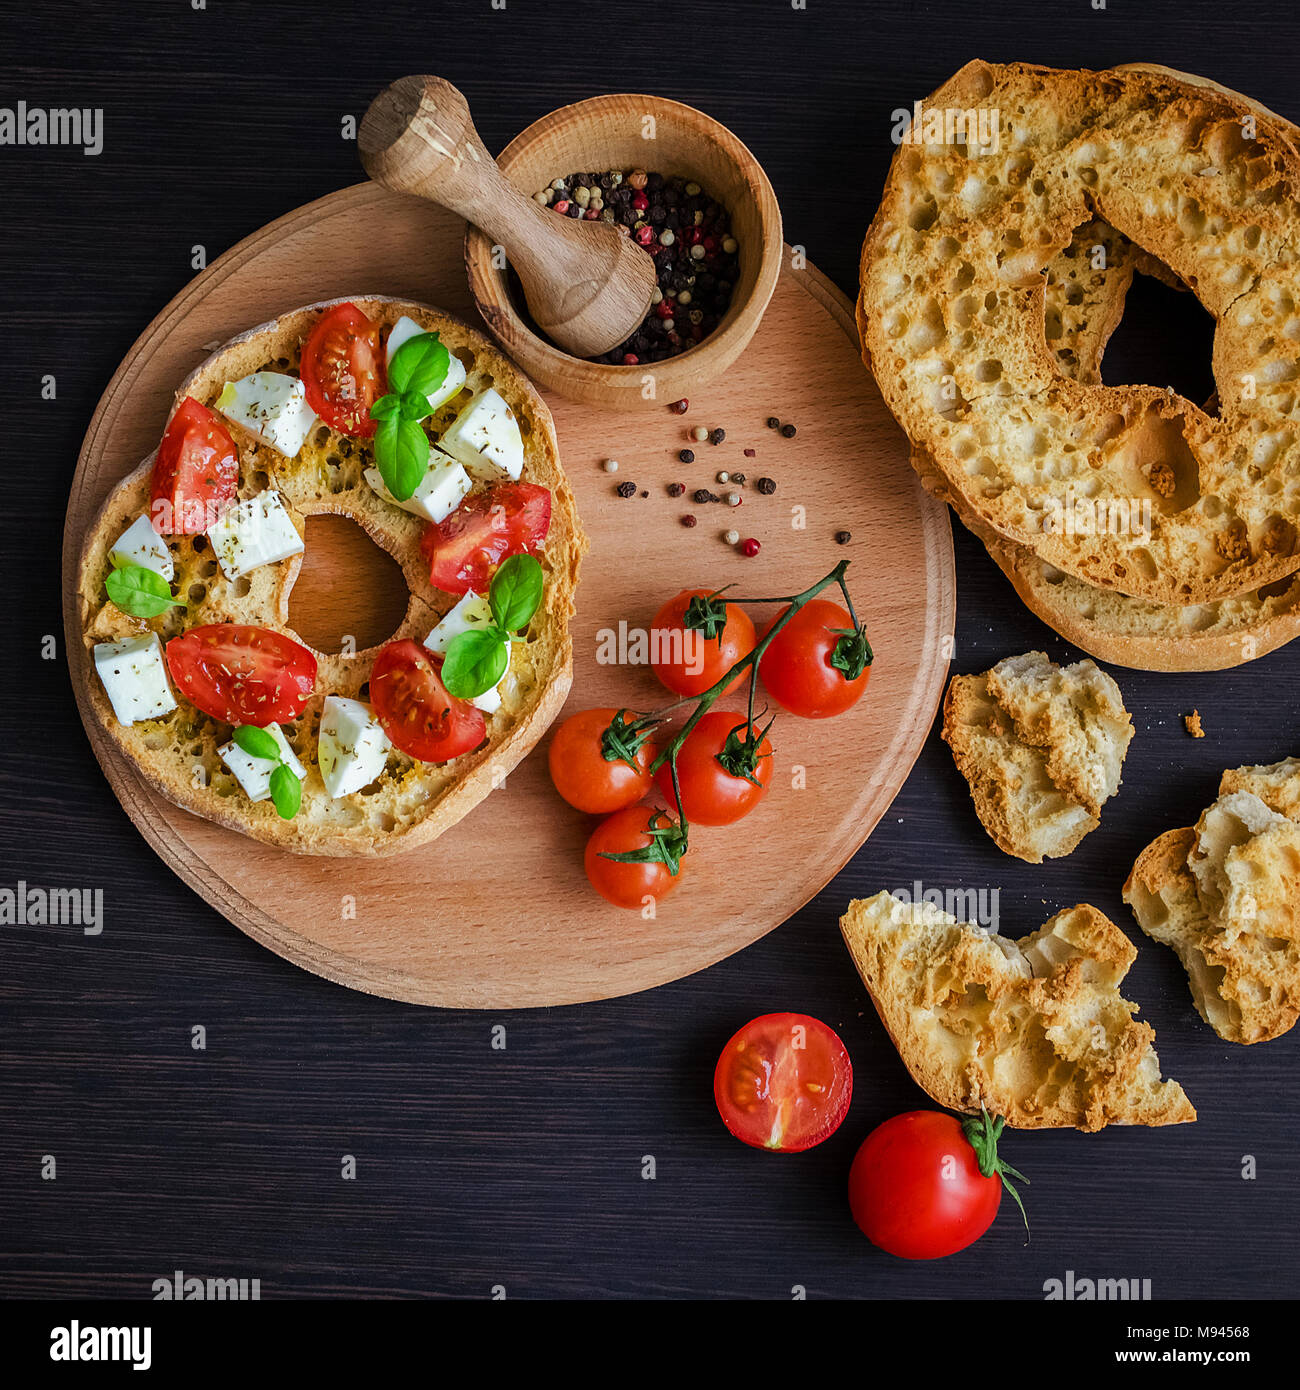 Italian appetizer Friselle. Italian dried bread Friselle on wooden board with tomatoes cherry, basil and peppercorns. Italian food. Healthy vegetarian - Stock Image